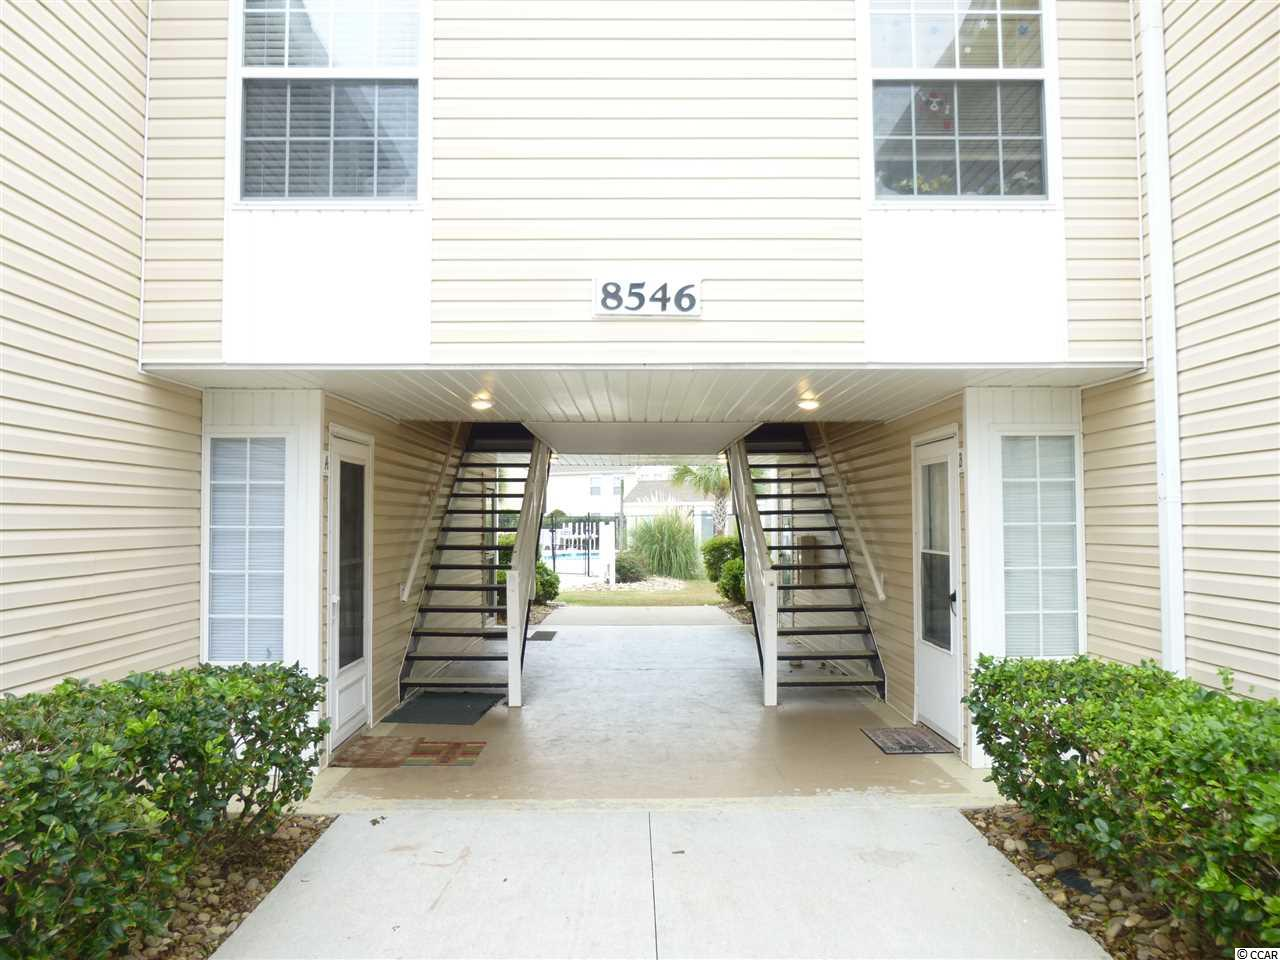 3 bedroom 2 bath first floor unit next to the community pool. This unit is partly furnished .  2.2 miles to the beautiful Atlantic Ocean and the soon to be rebuilt Surfside Beach Pier. Great vacation home or snow bird home.  Pack your bags    and come on down. { leave your snow shovel behind !! }  Long term rentals are allowed according to the hoa rules.